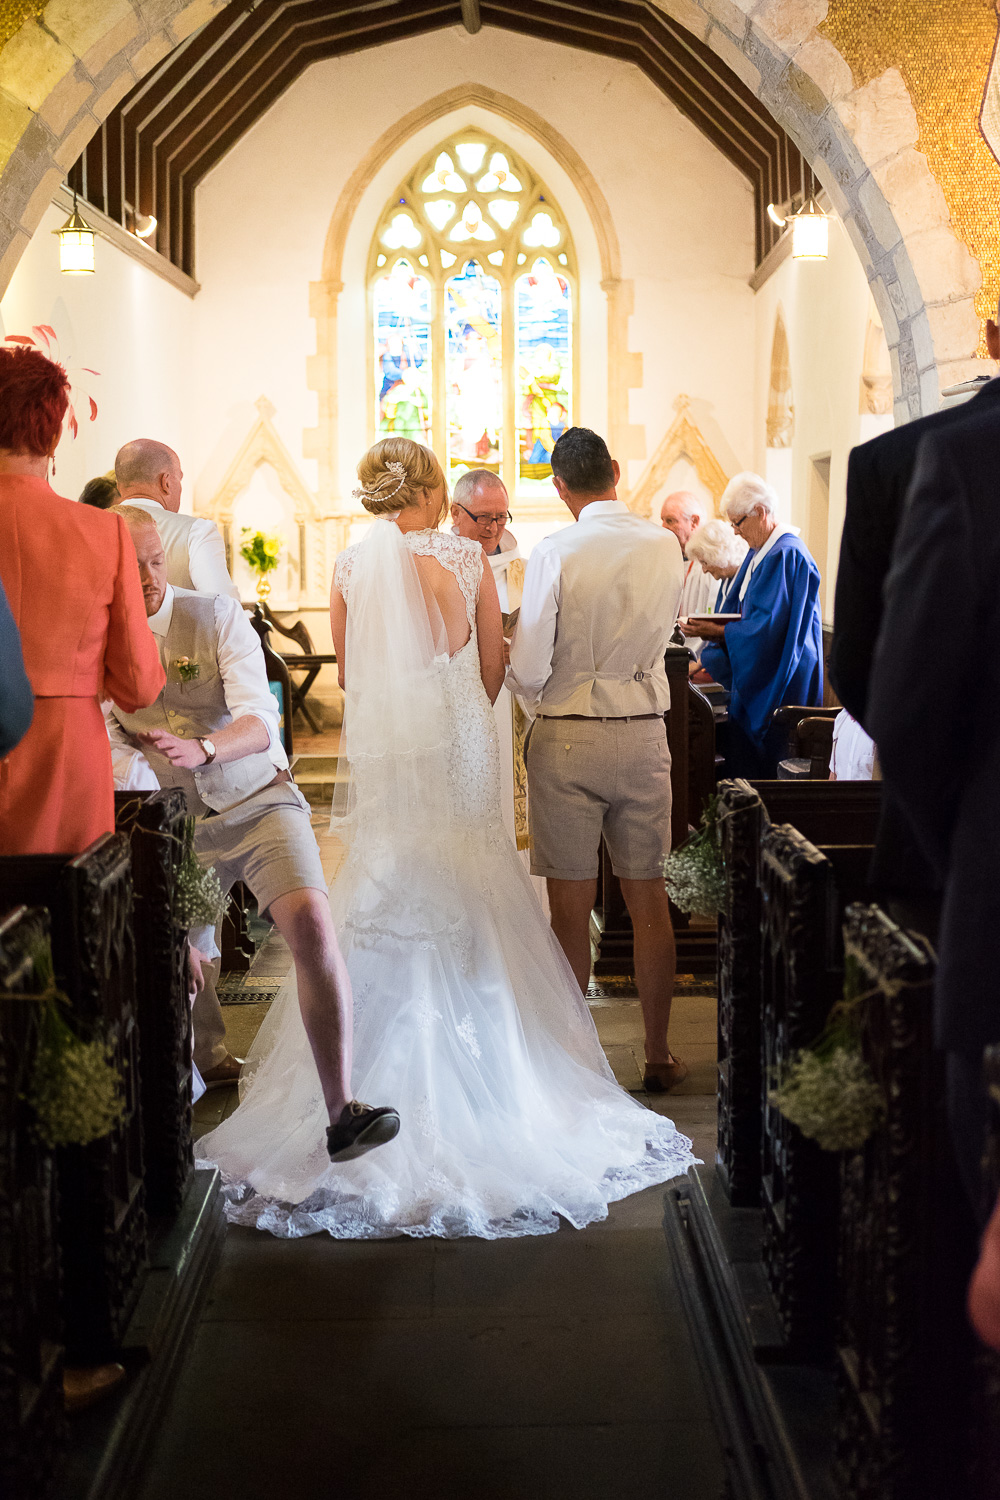 big step over the brides dress during the ceremony at st mary's church in woolacombe